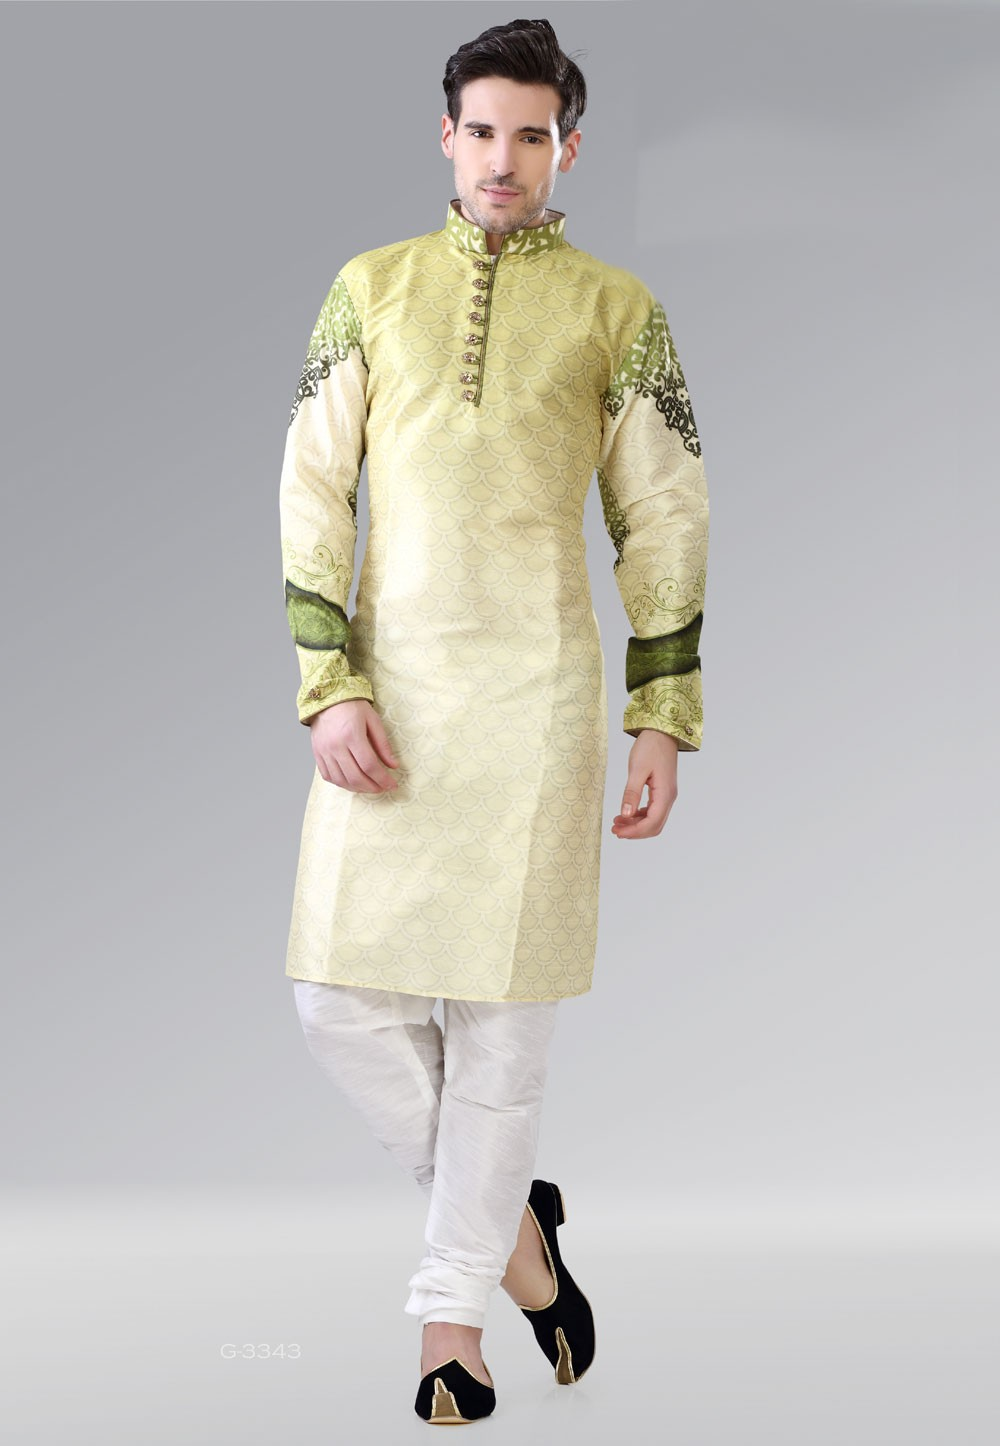 Fashionable Men's Yellow,Green Color Readymade Kurta Pajama.